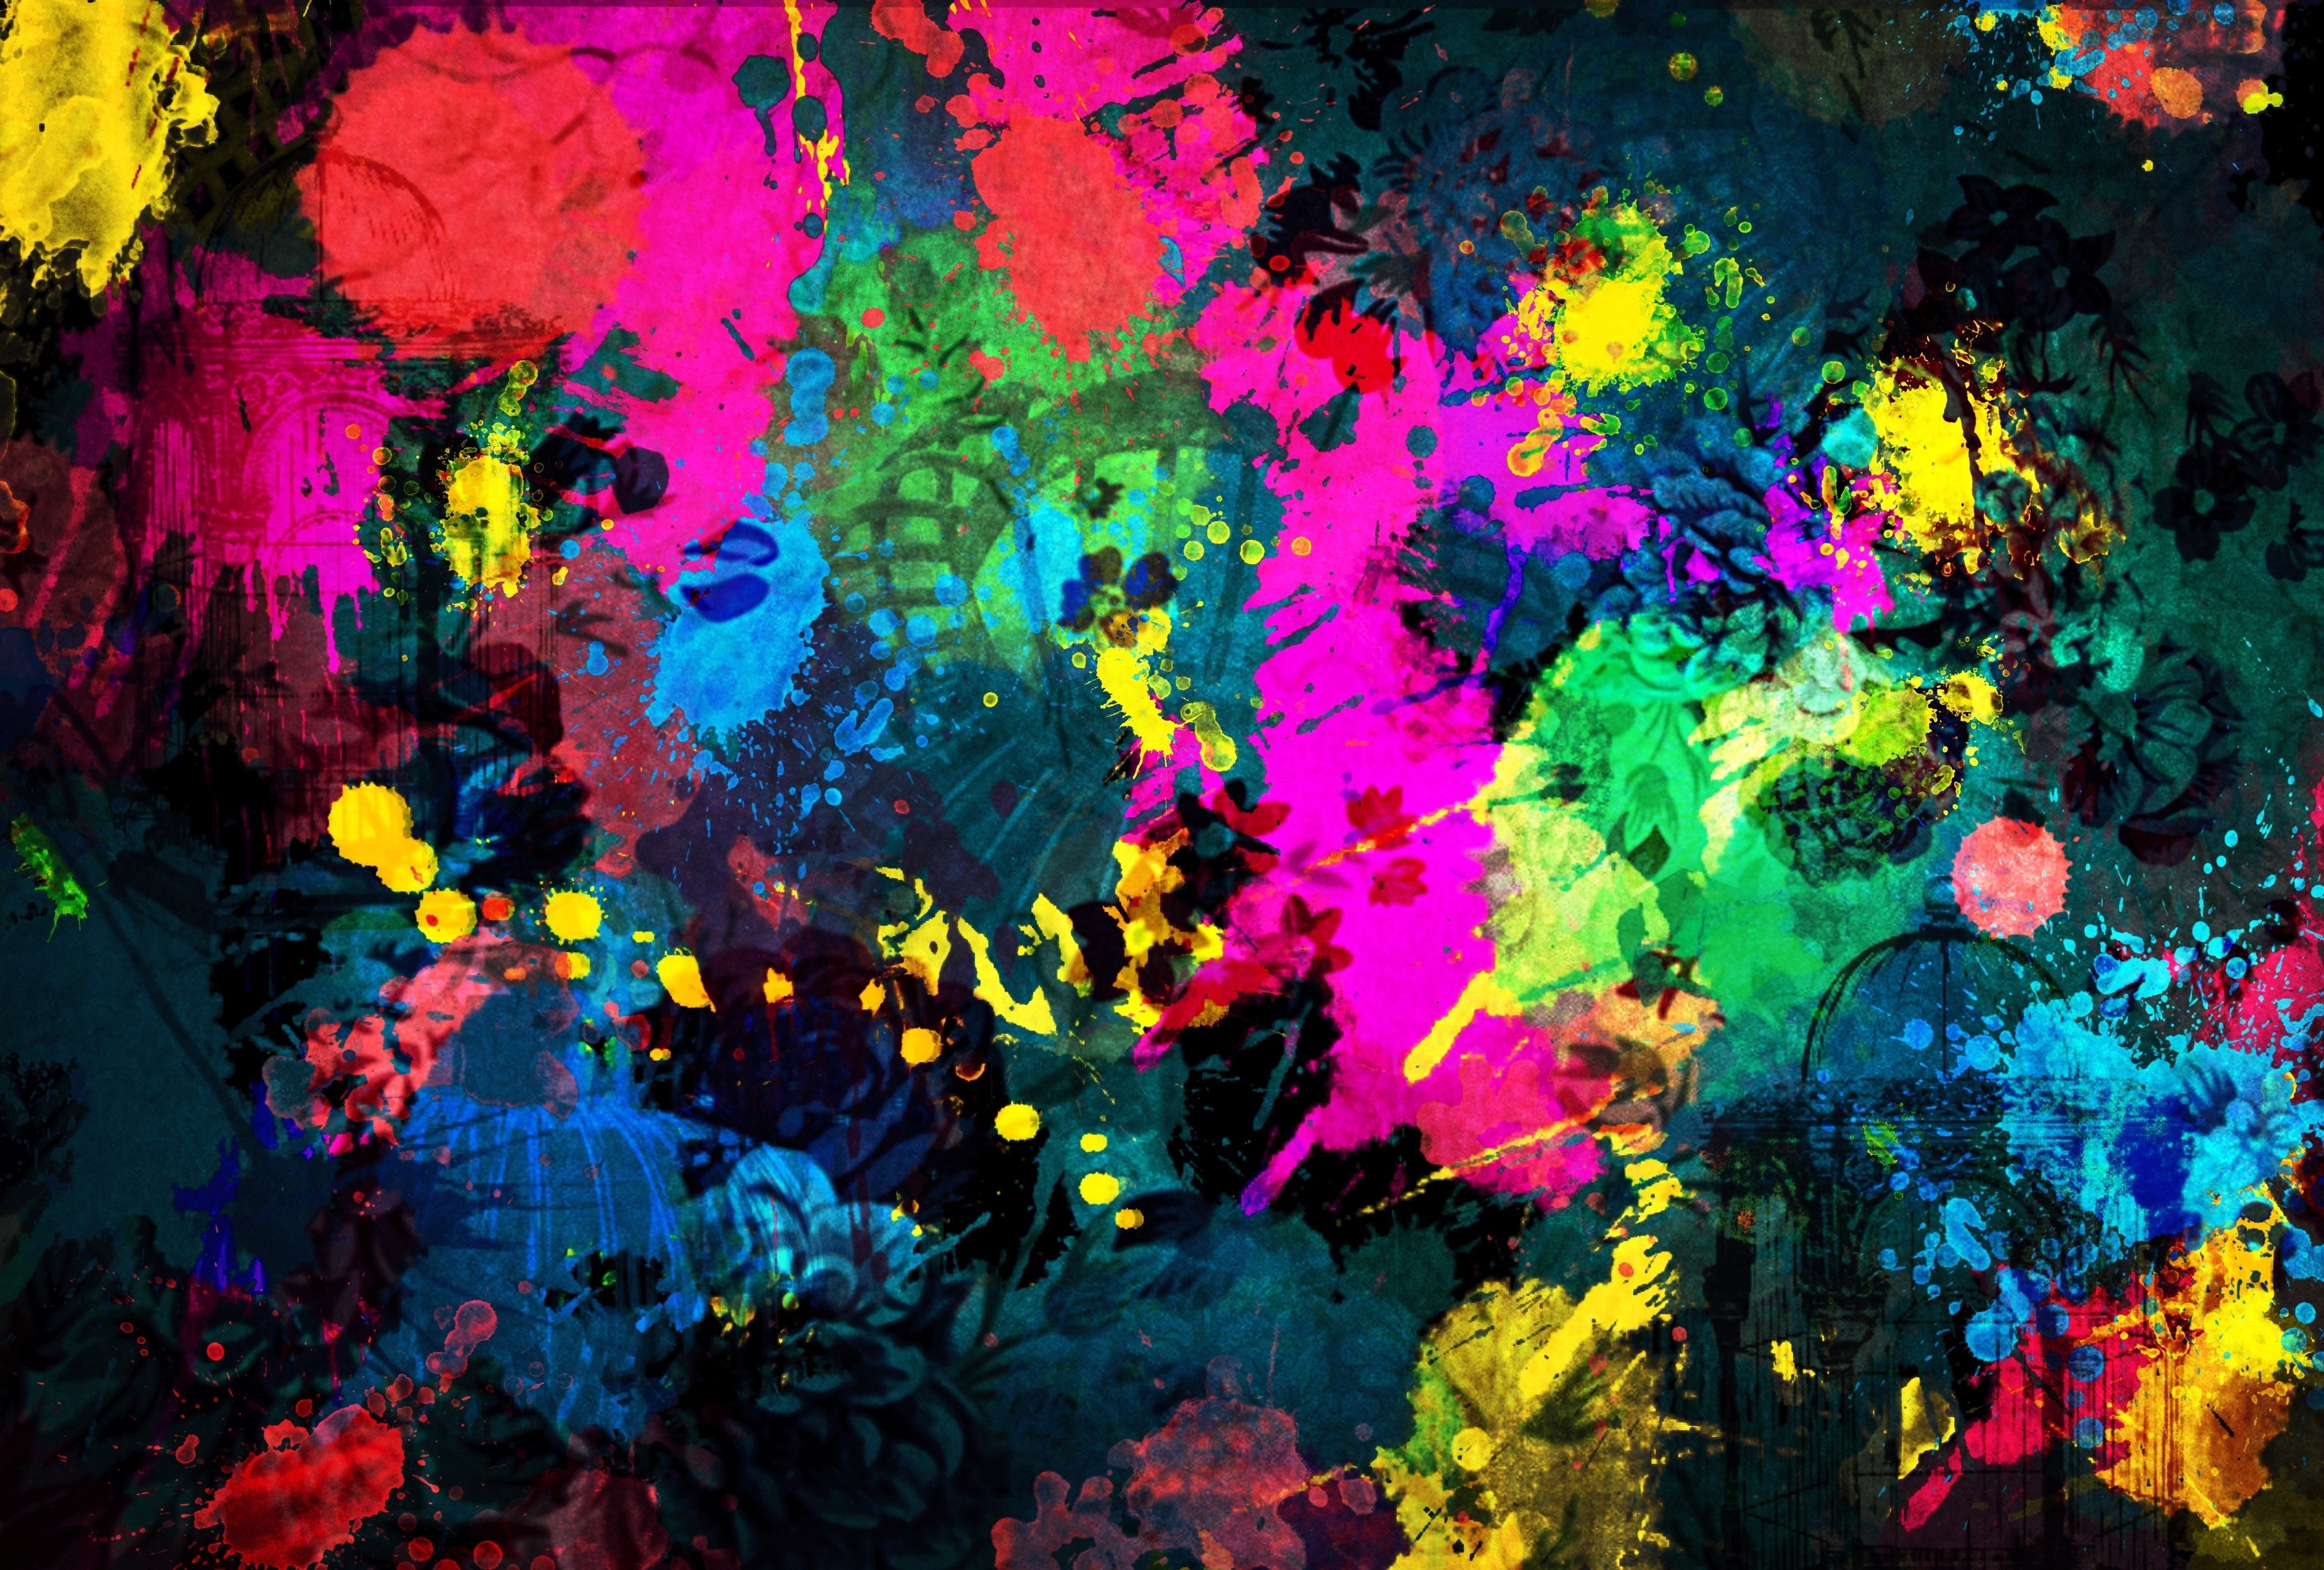 Bright background wallpapers and images   wallpapers pictures photos 3700x2500